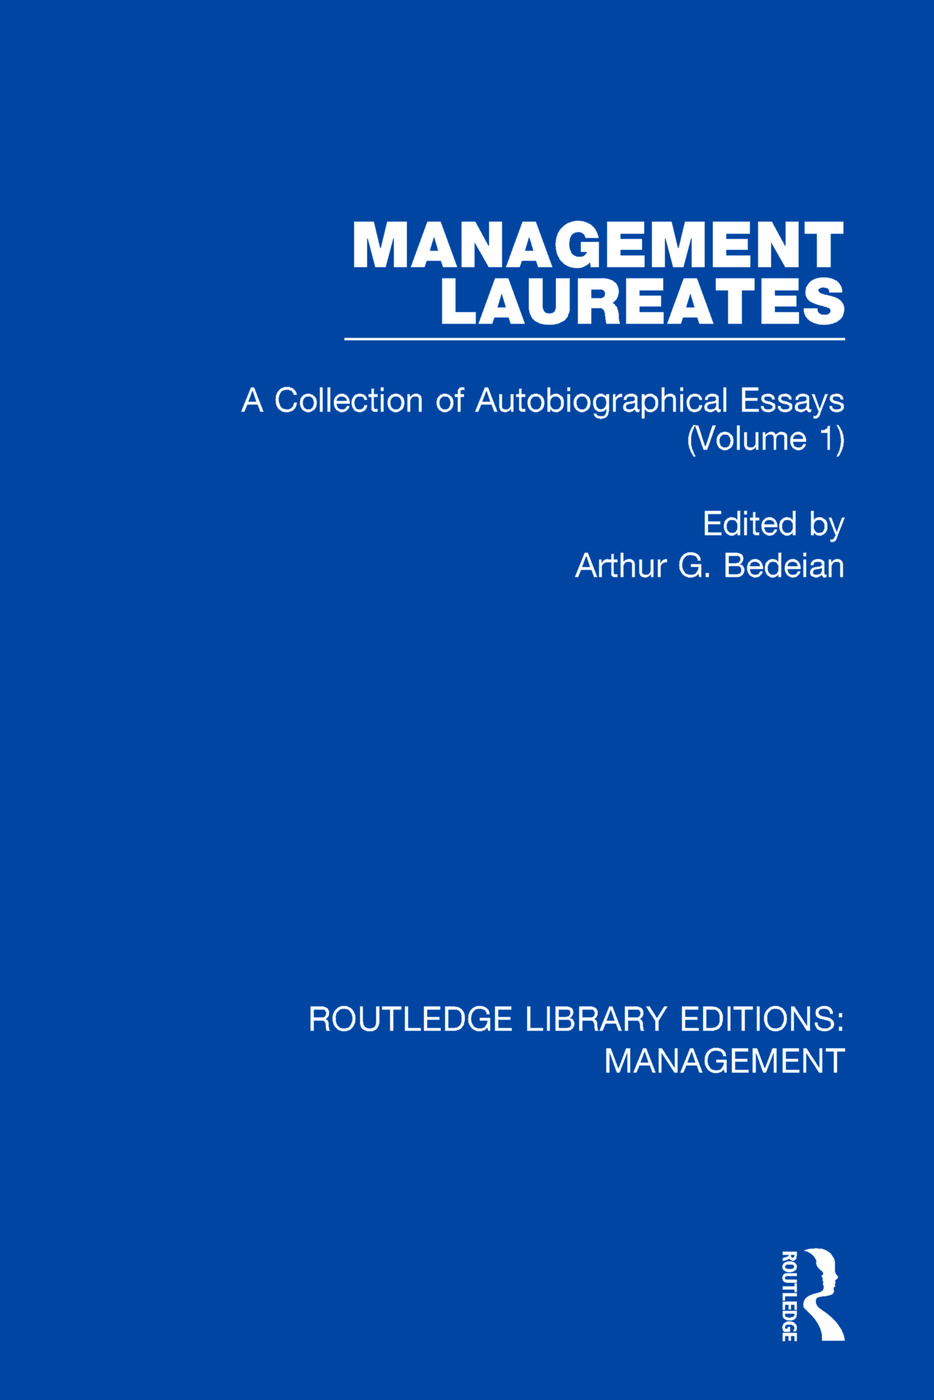 Management Laureates: A Collection of Autobiographical Essays (Volume 1) book cover